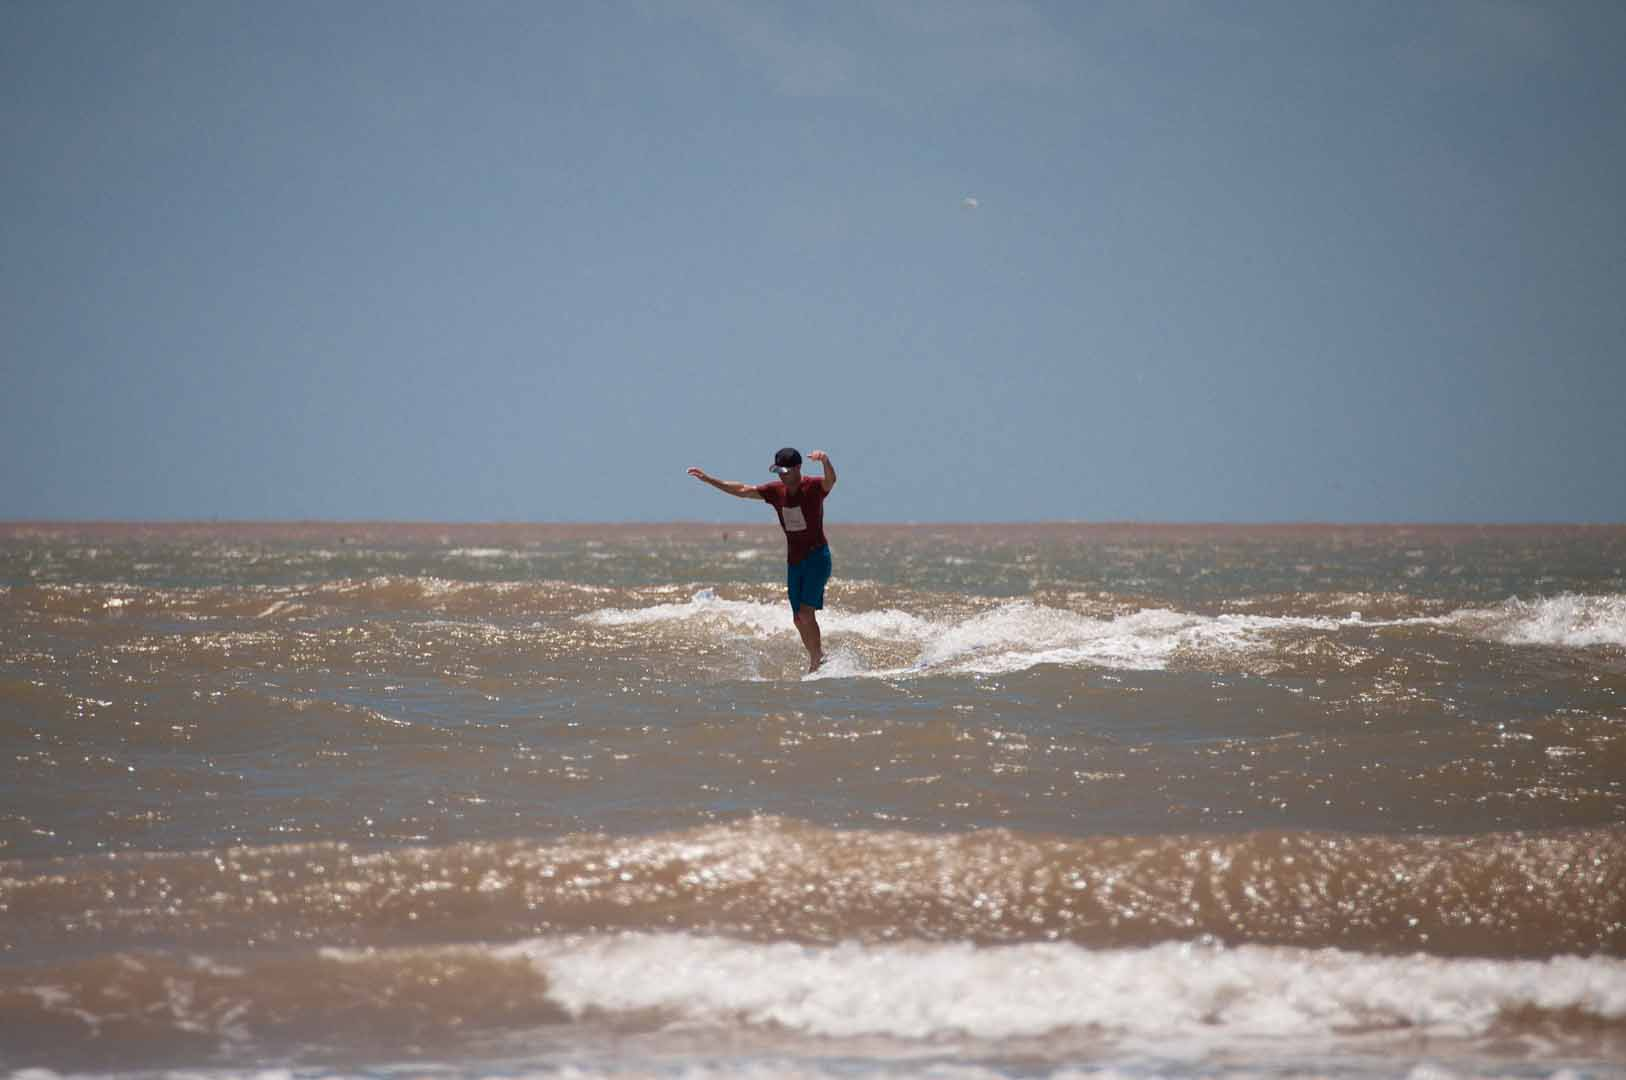 SurfsideLateJune_20150627_180